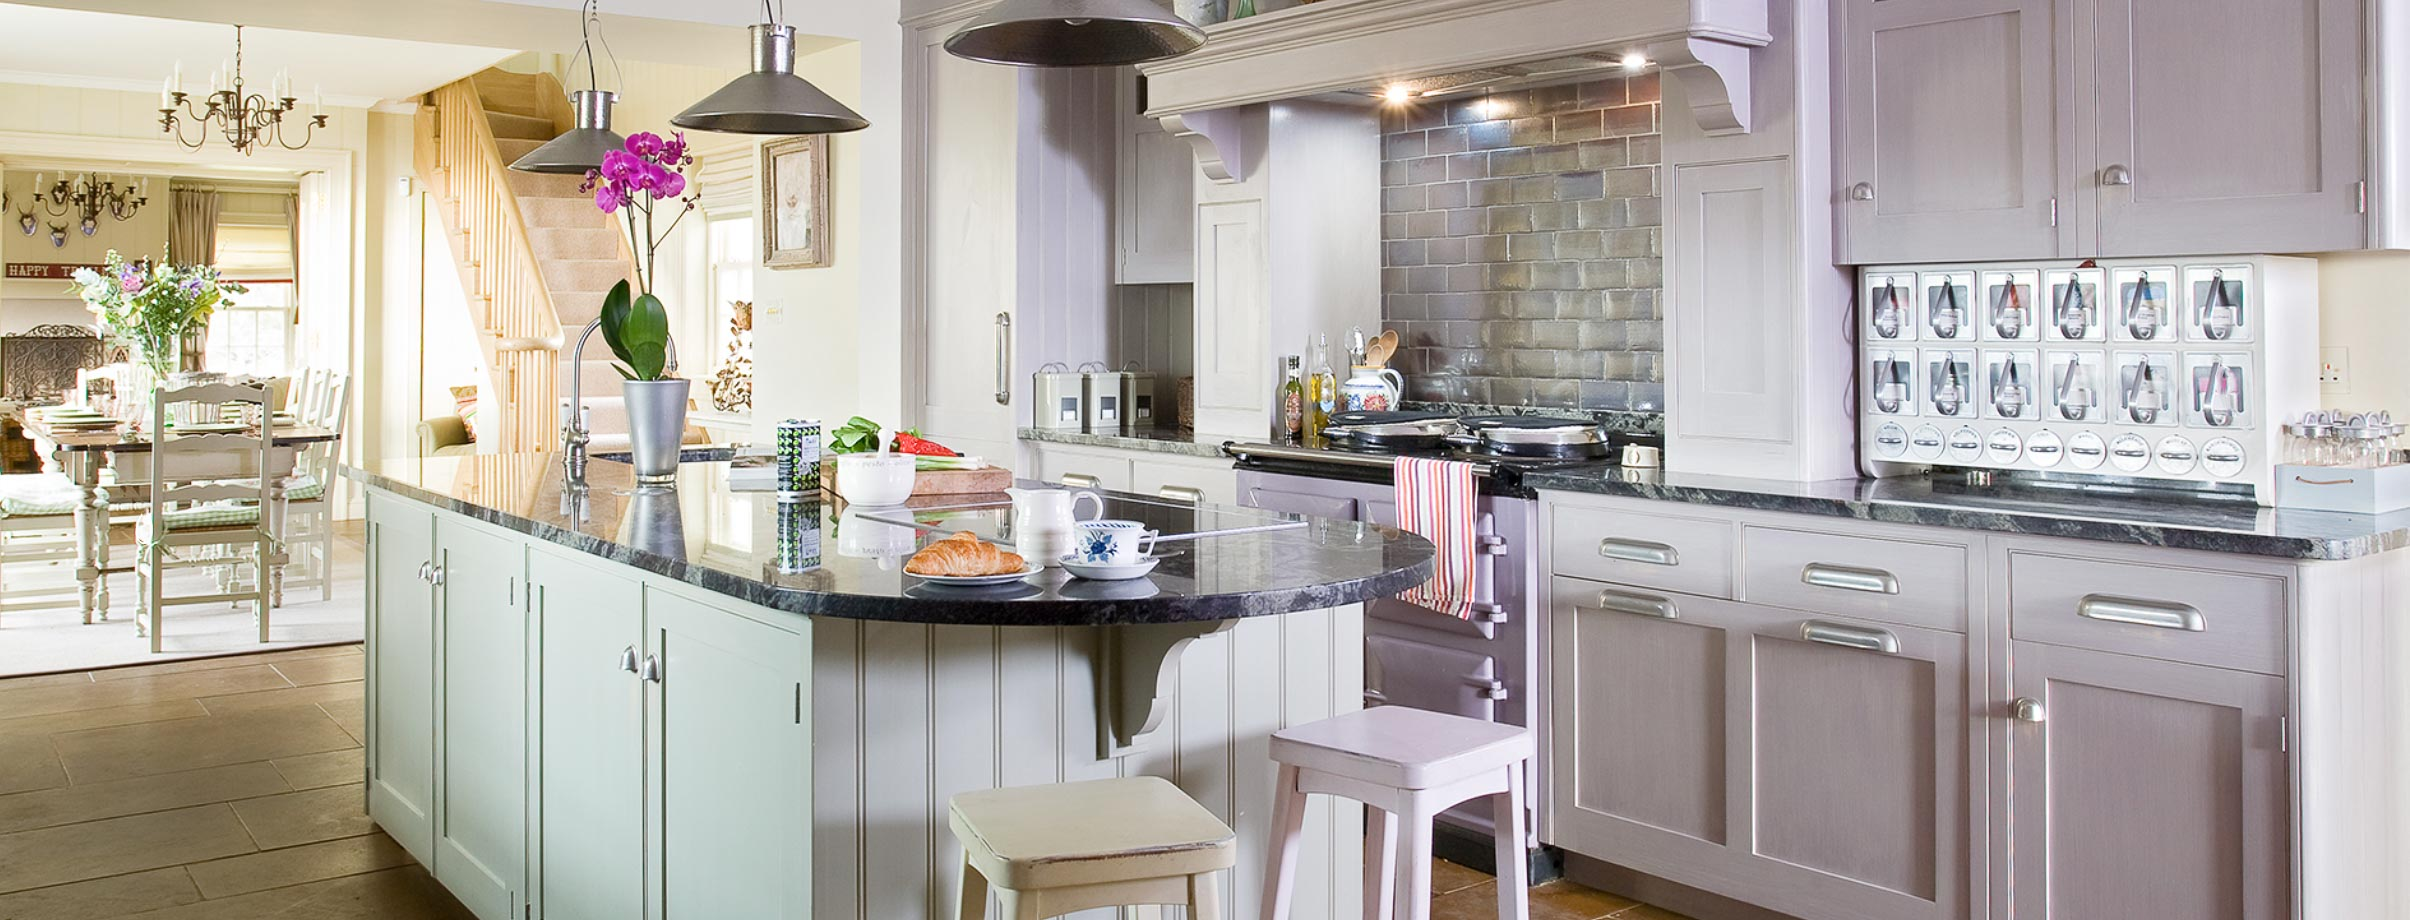 Kitchen Designer Jobs Dundee